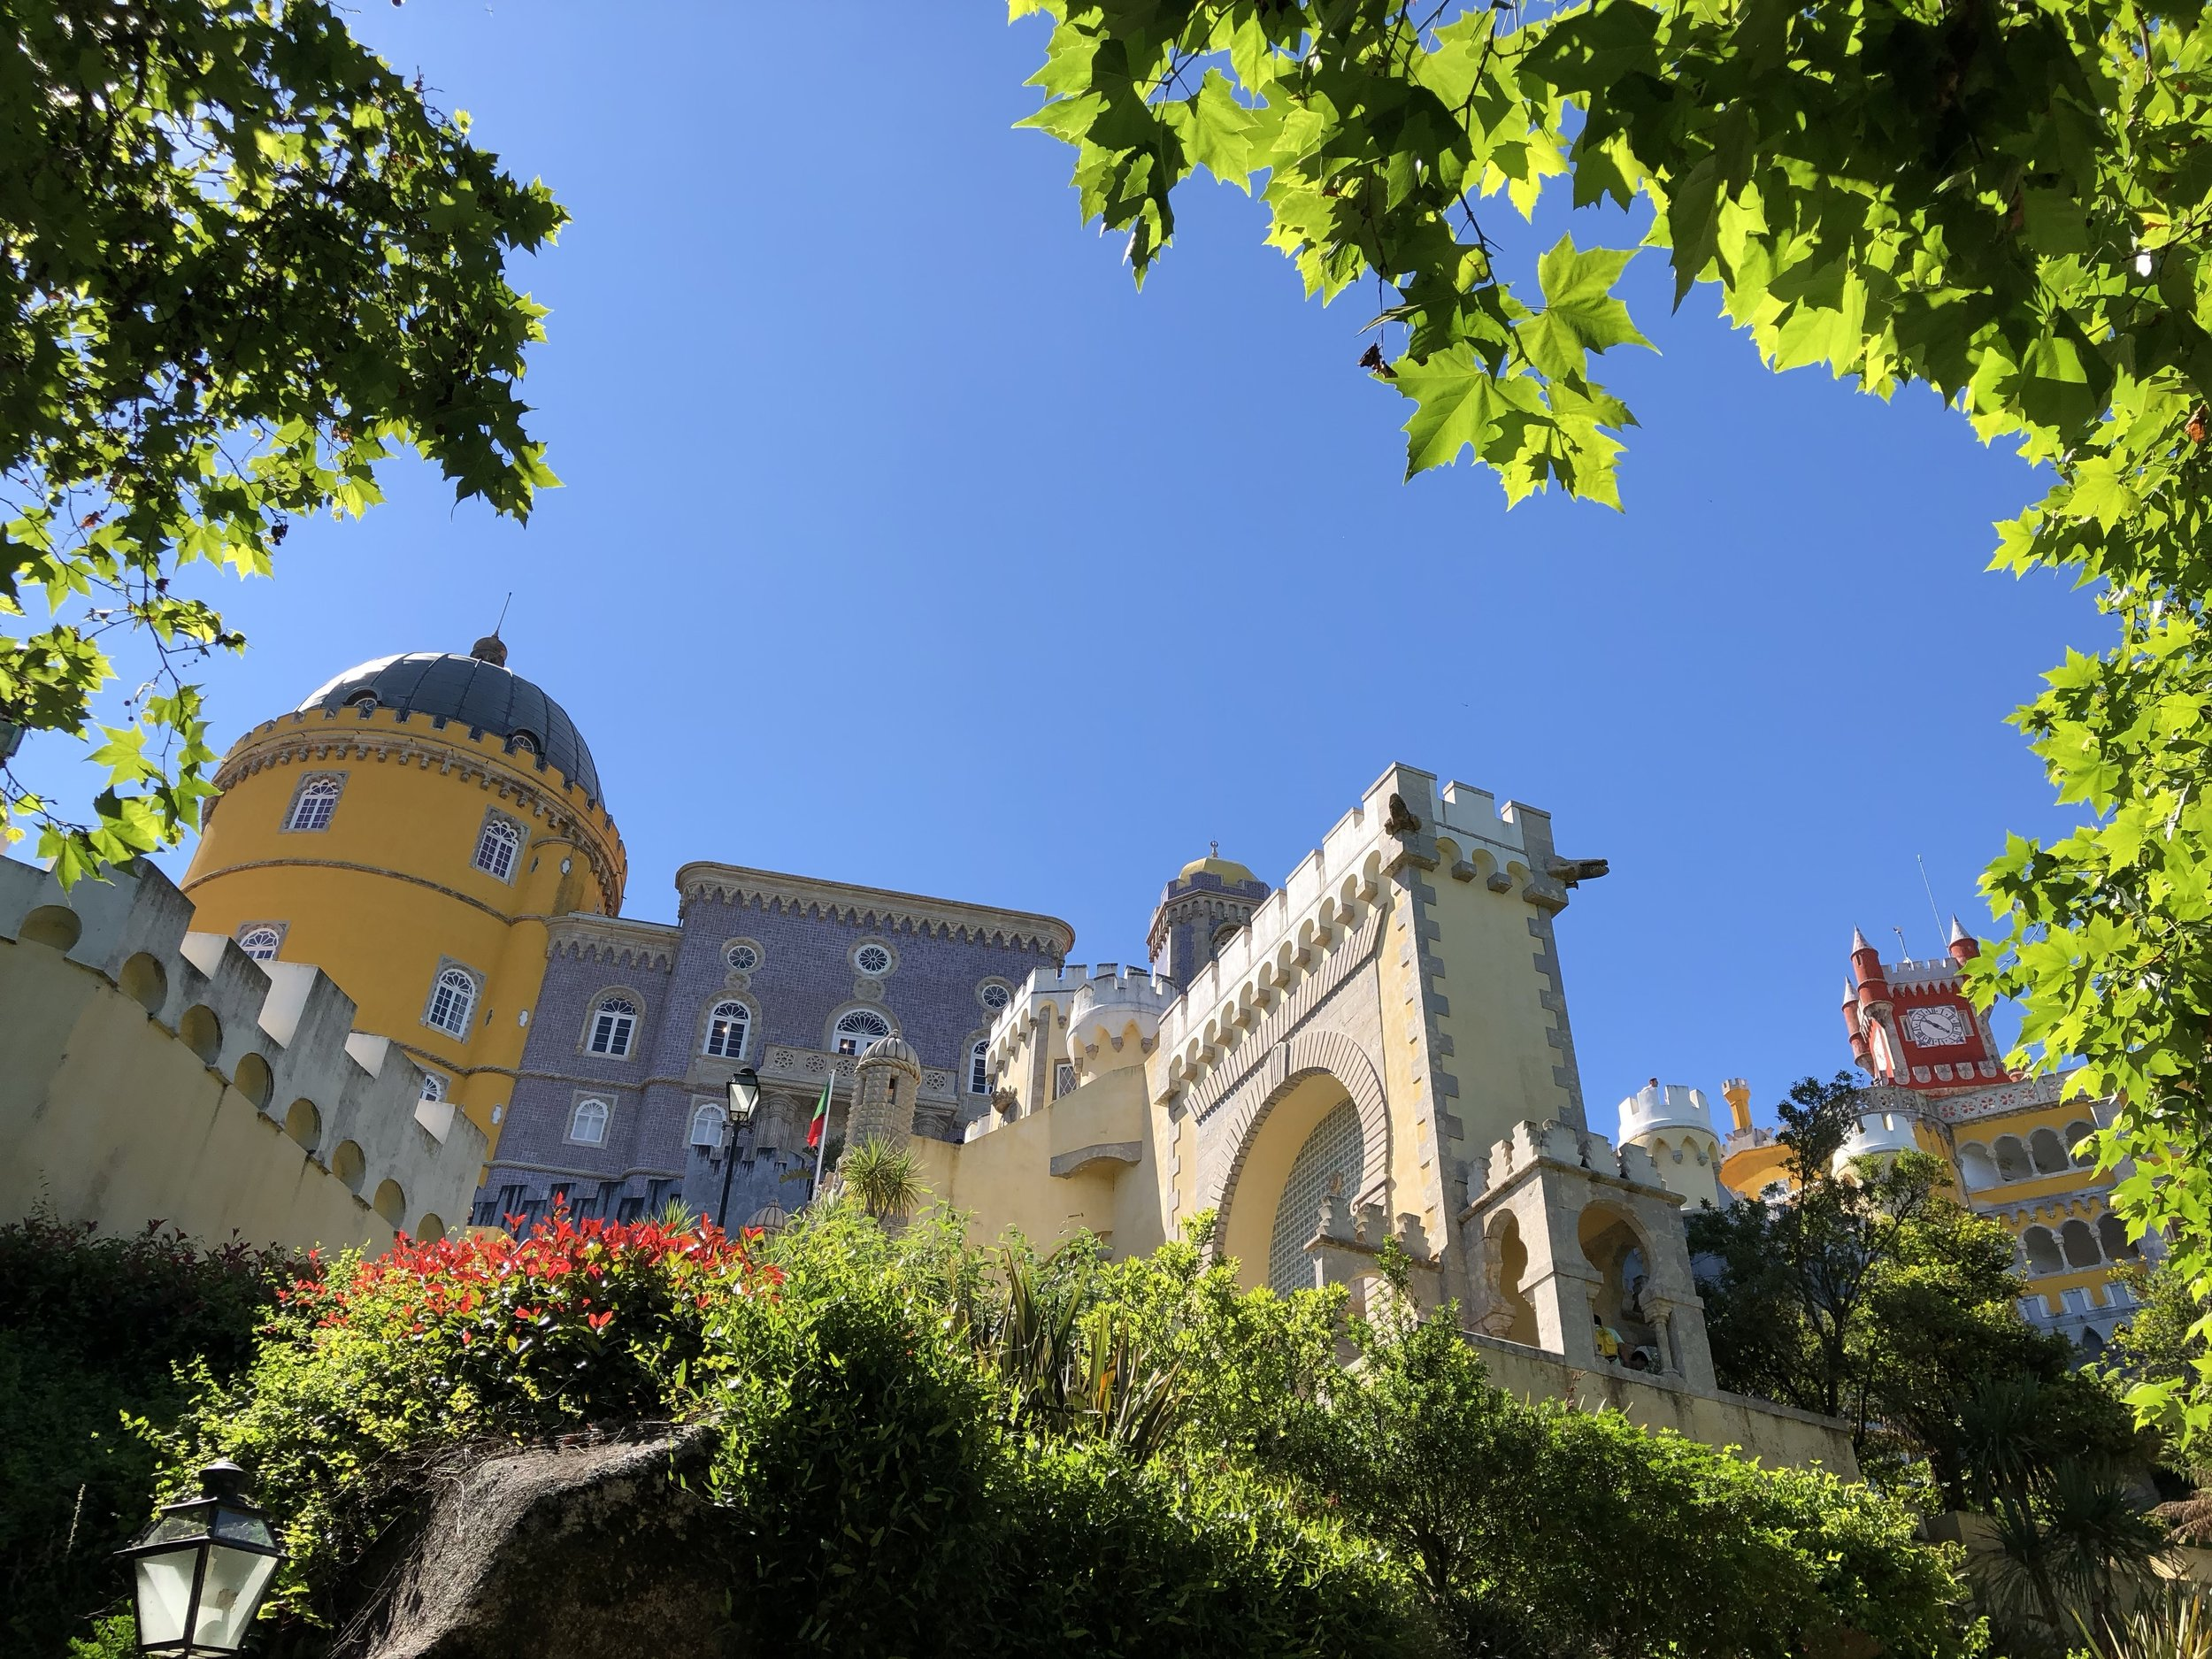 We visited several castles on our trip, including Pena Palace in Sintra.